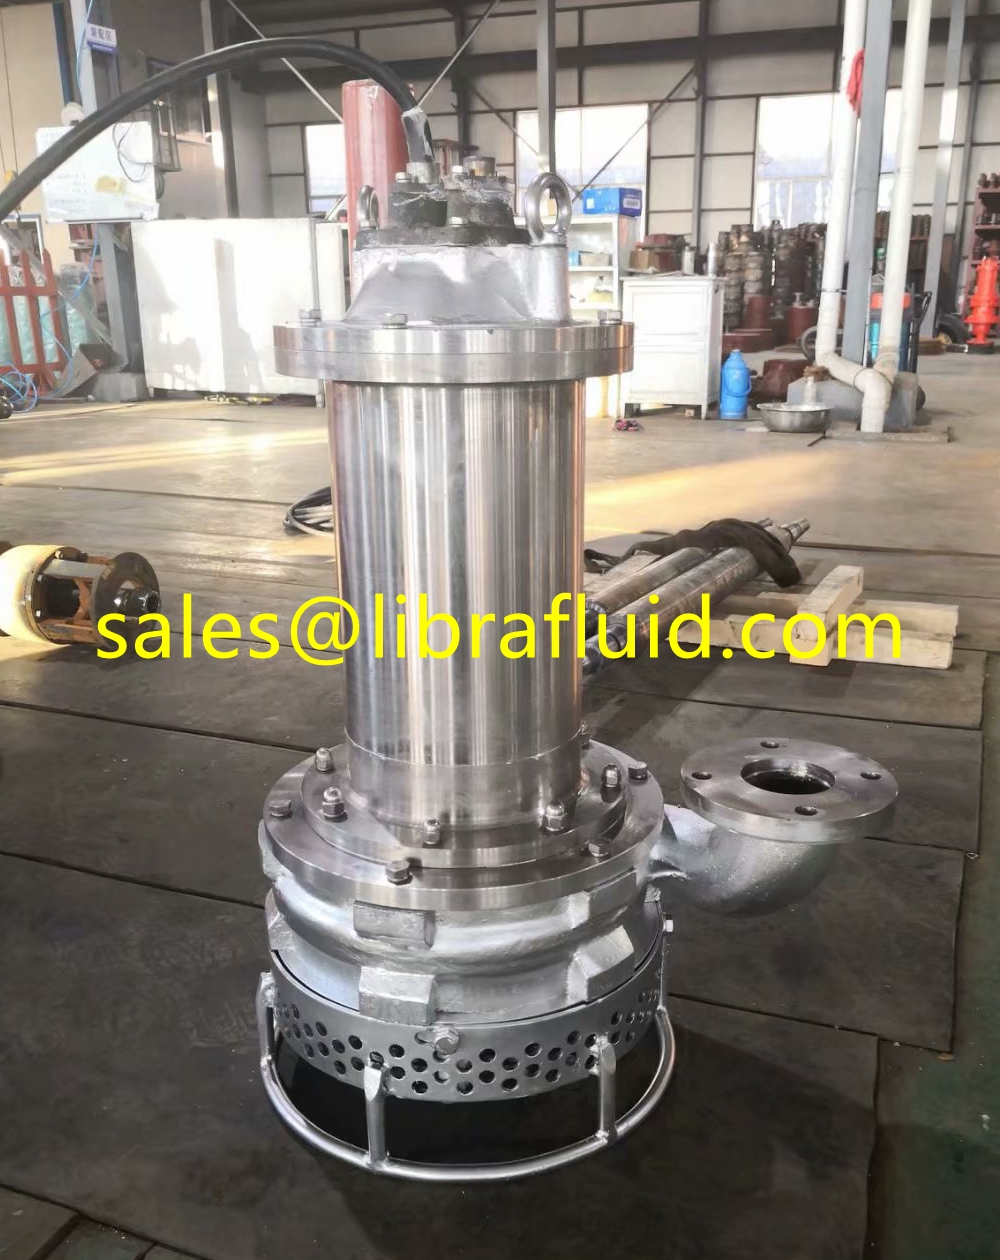 Stainless steel Submersible slurry pump for chemical slurry condition